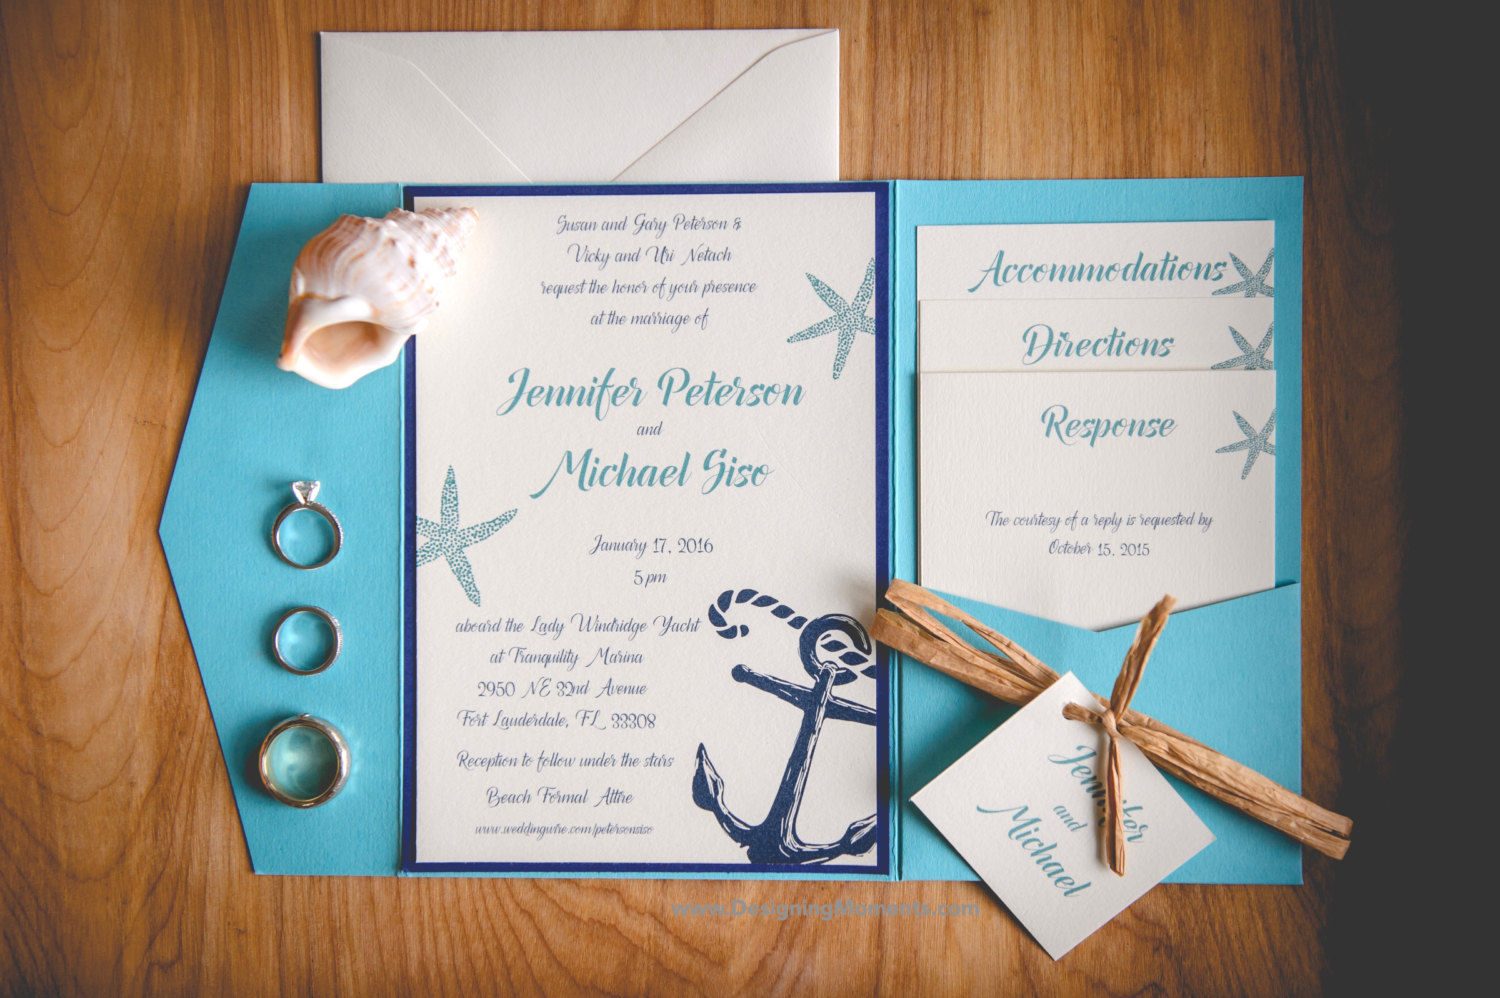 Spread the Word with Stylish and Original Beach Wedding Invitations ...